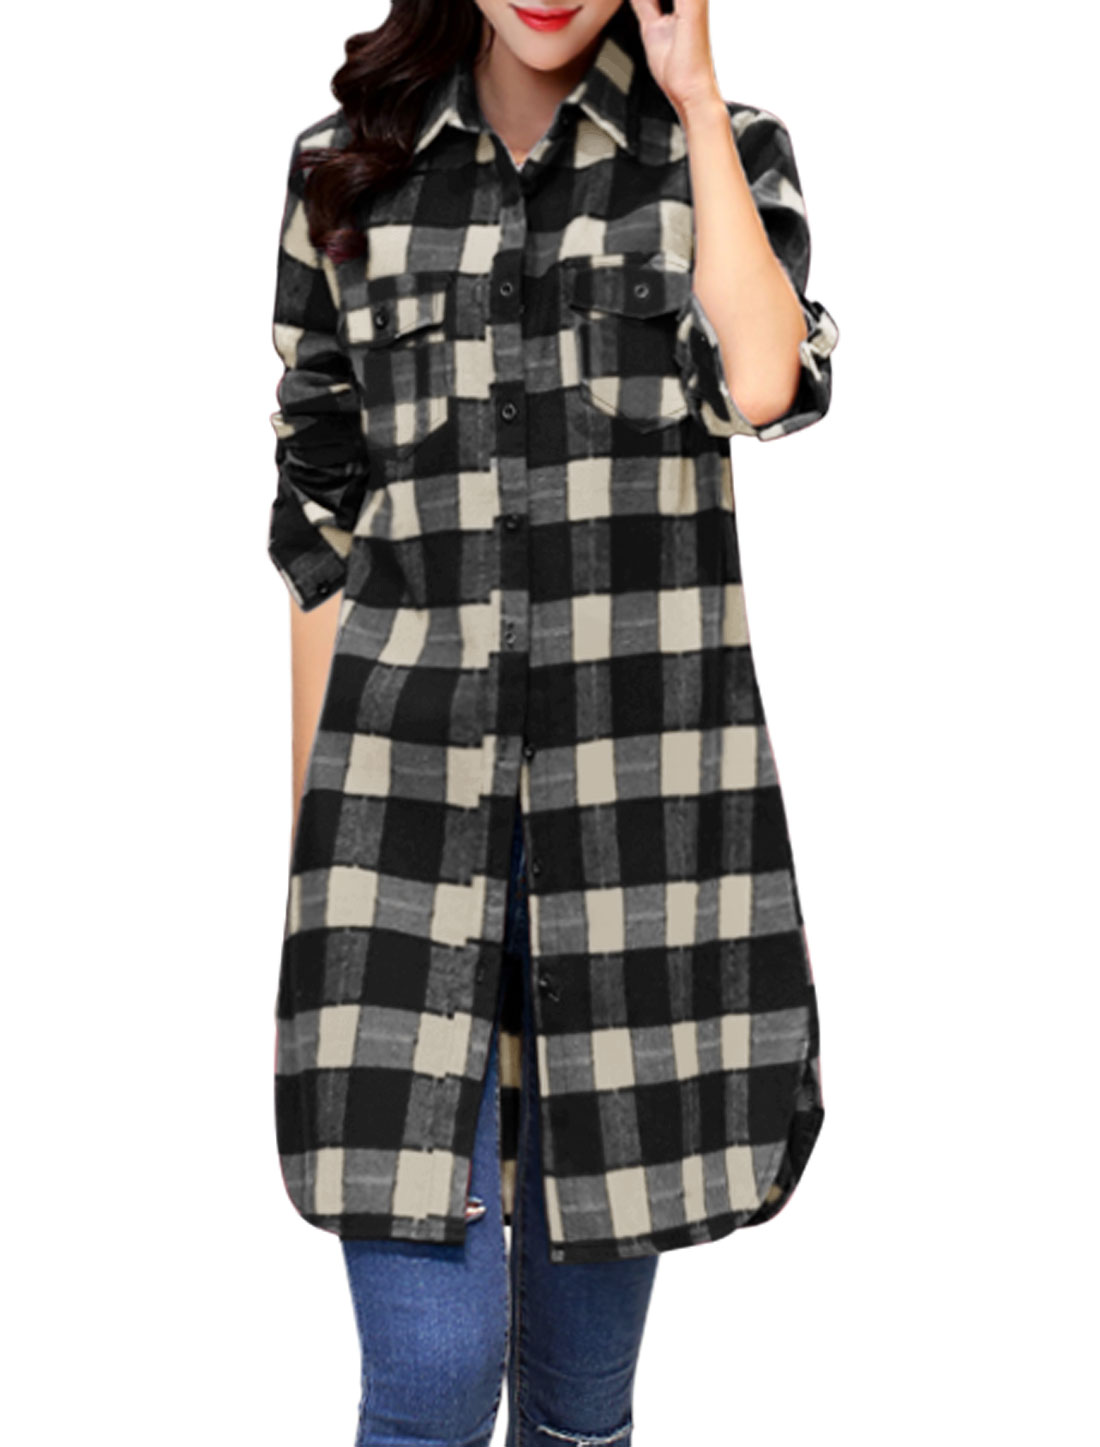 Women Roll Up Sleeves Checks Pocket Button Down Tunic Jacket Black XS